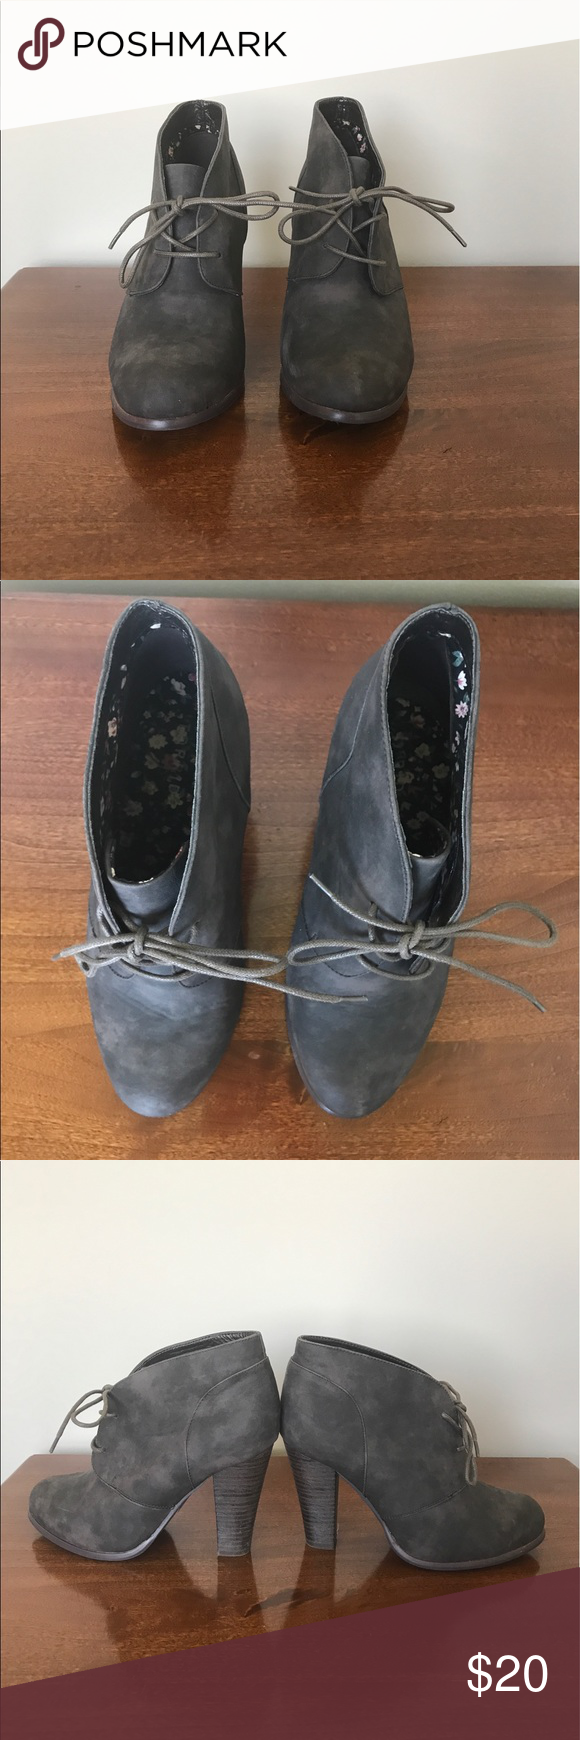 💚2 for $25 sale Torrid gray tie up booties Let me know if you have any questions, 2 for $25 Torrid Shoes Ankle Boots & Booties